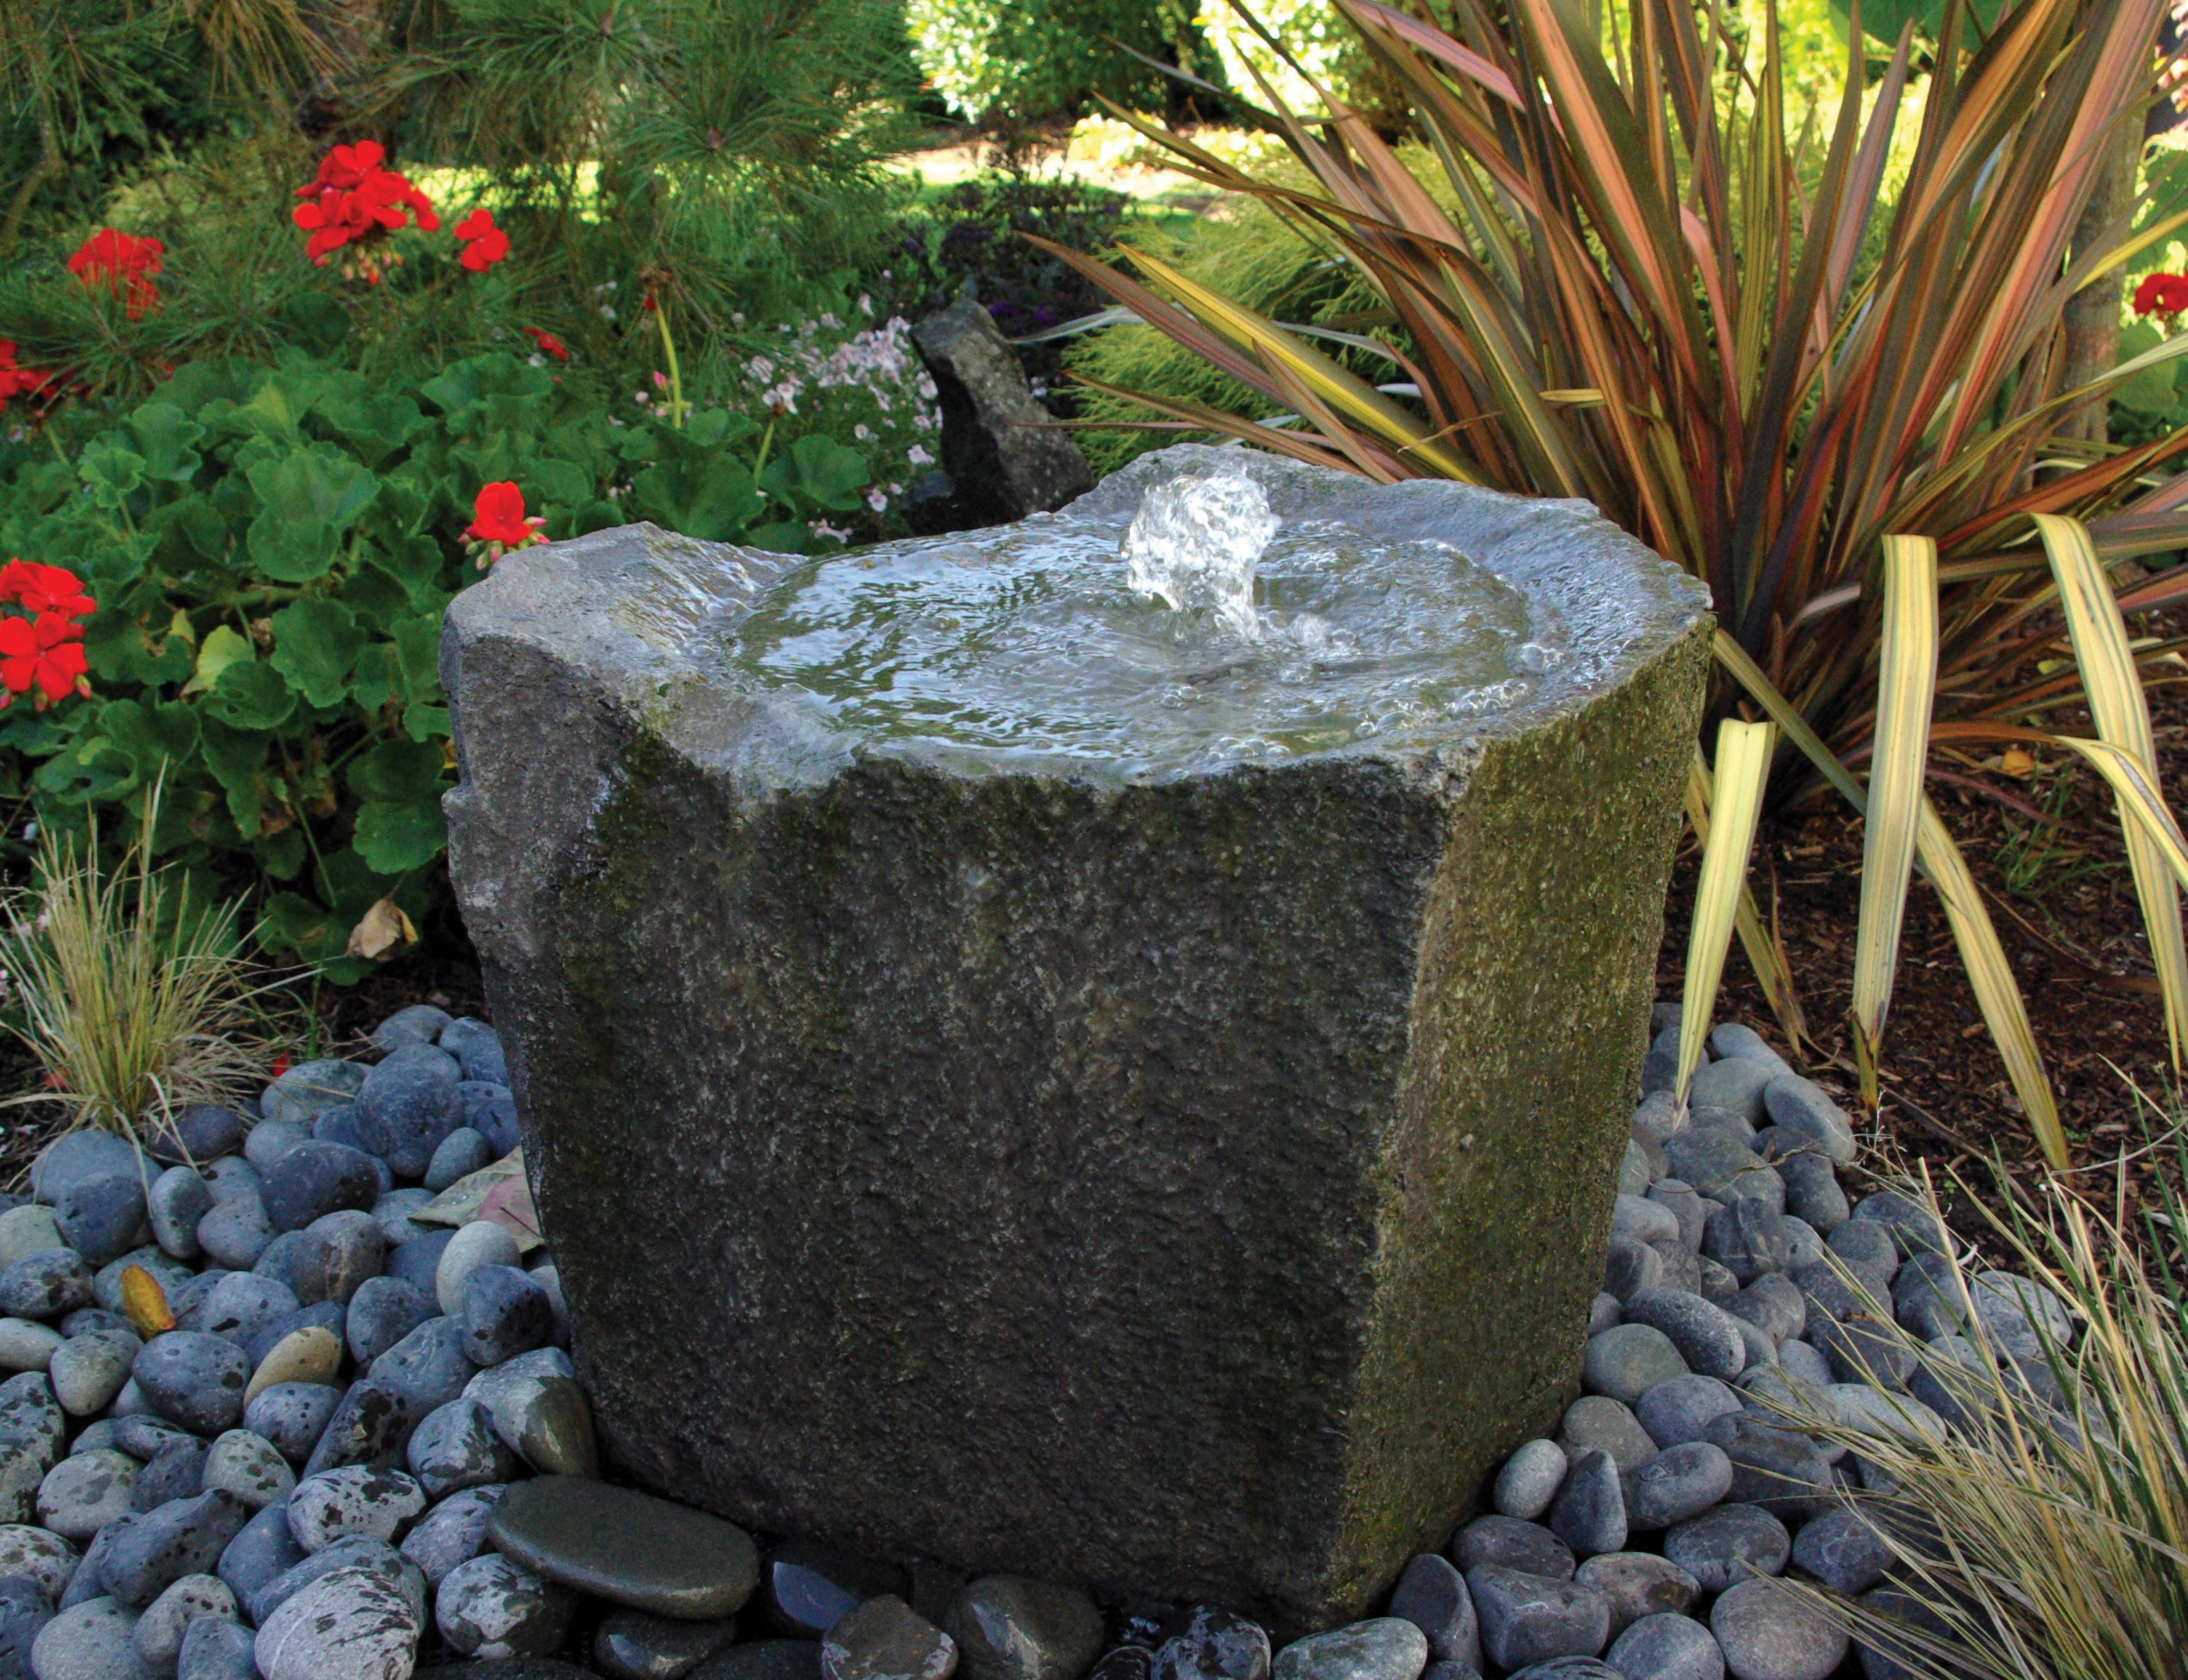 Klamath Basin Dimensions 16 H X 16 W Please Call 888 619 3474 For Details Rock Fountain Fountains Outdoor Outdoor Water Features